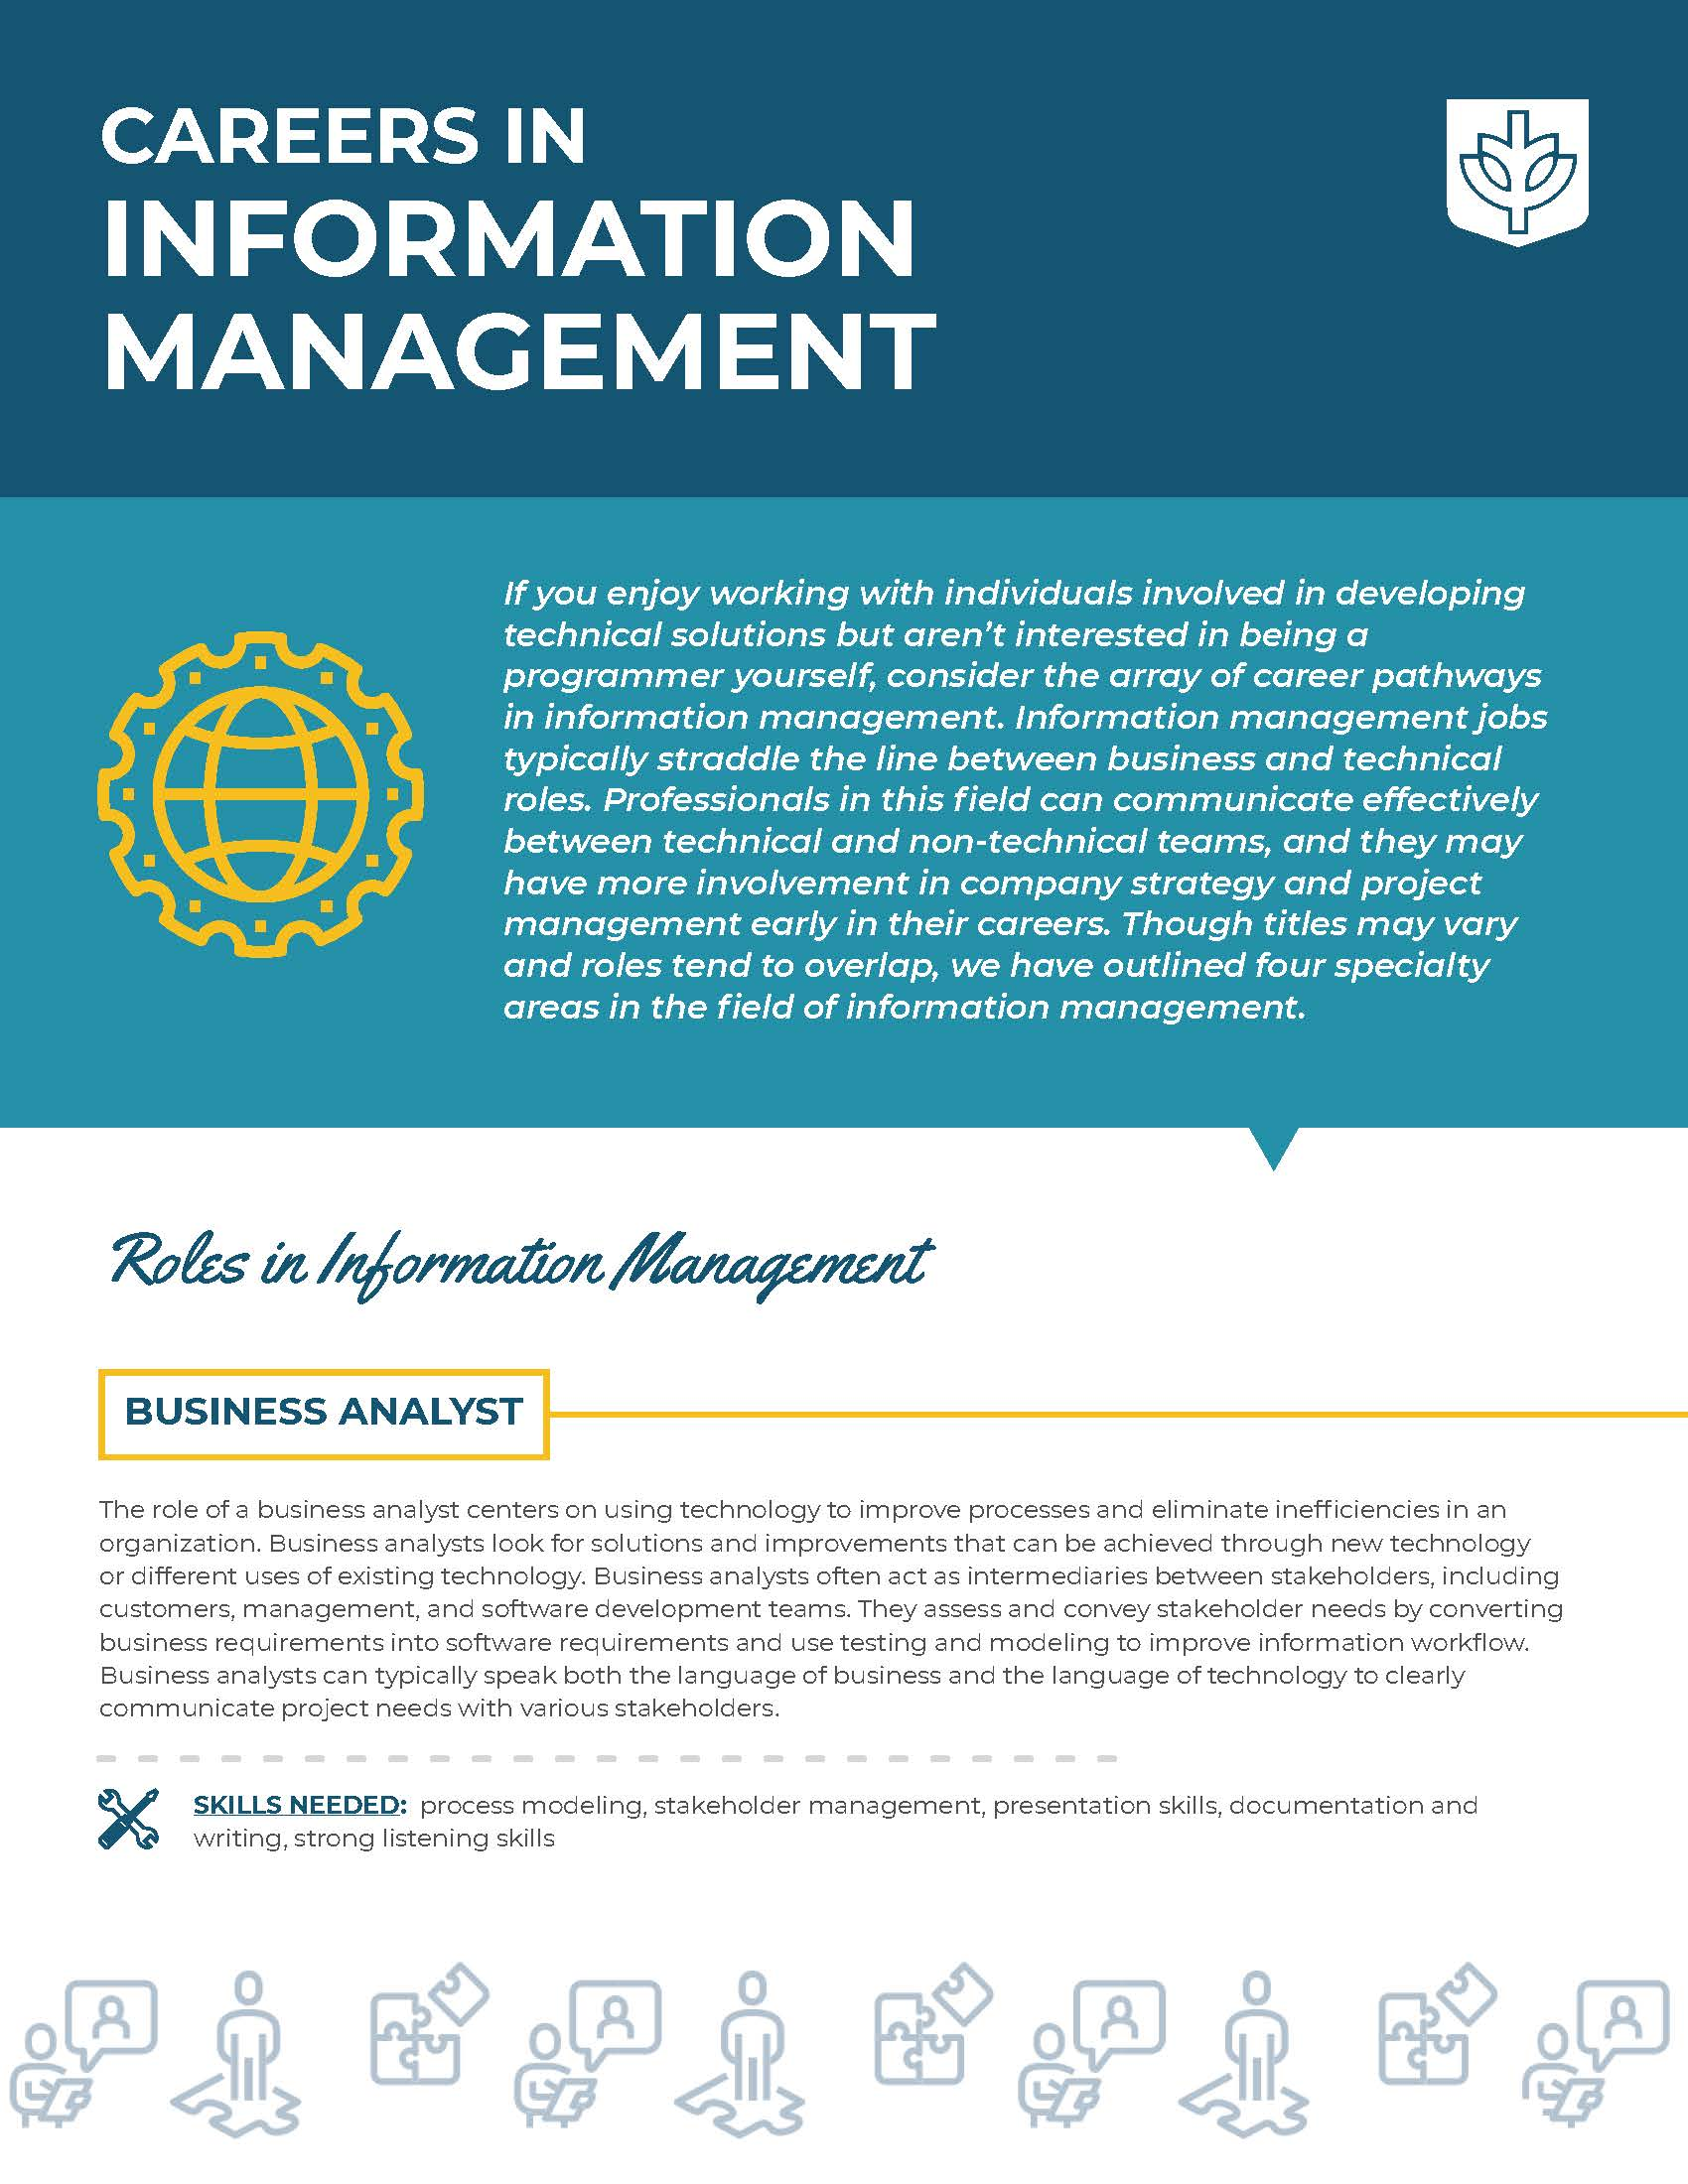 Careers in Information Management